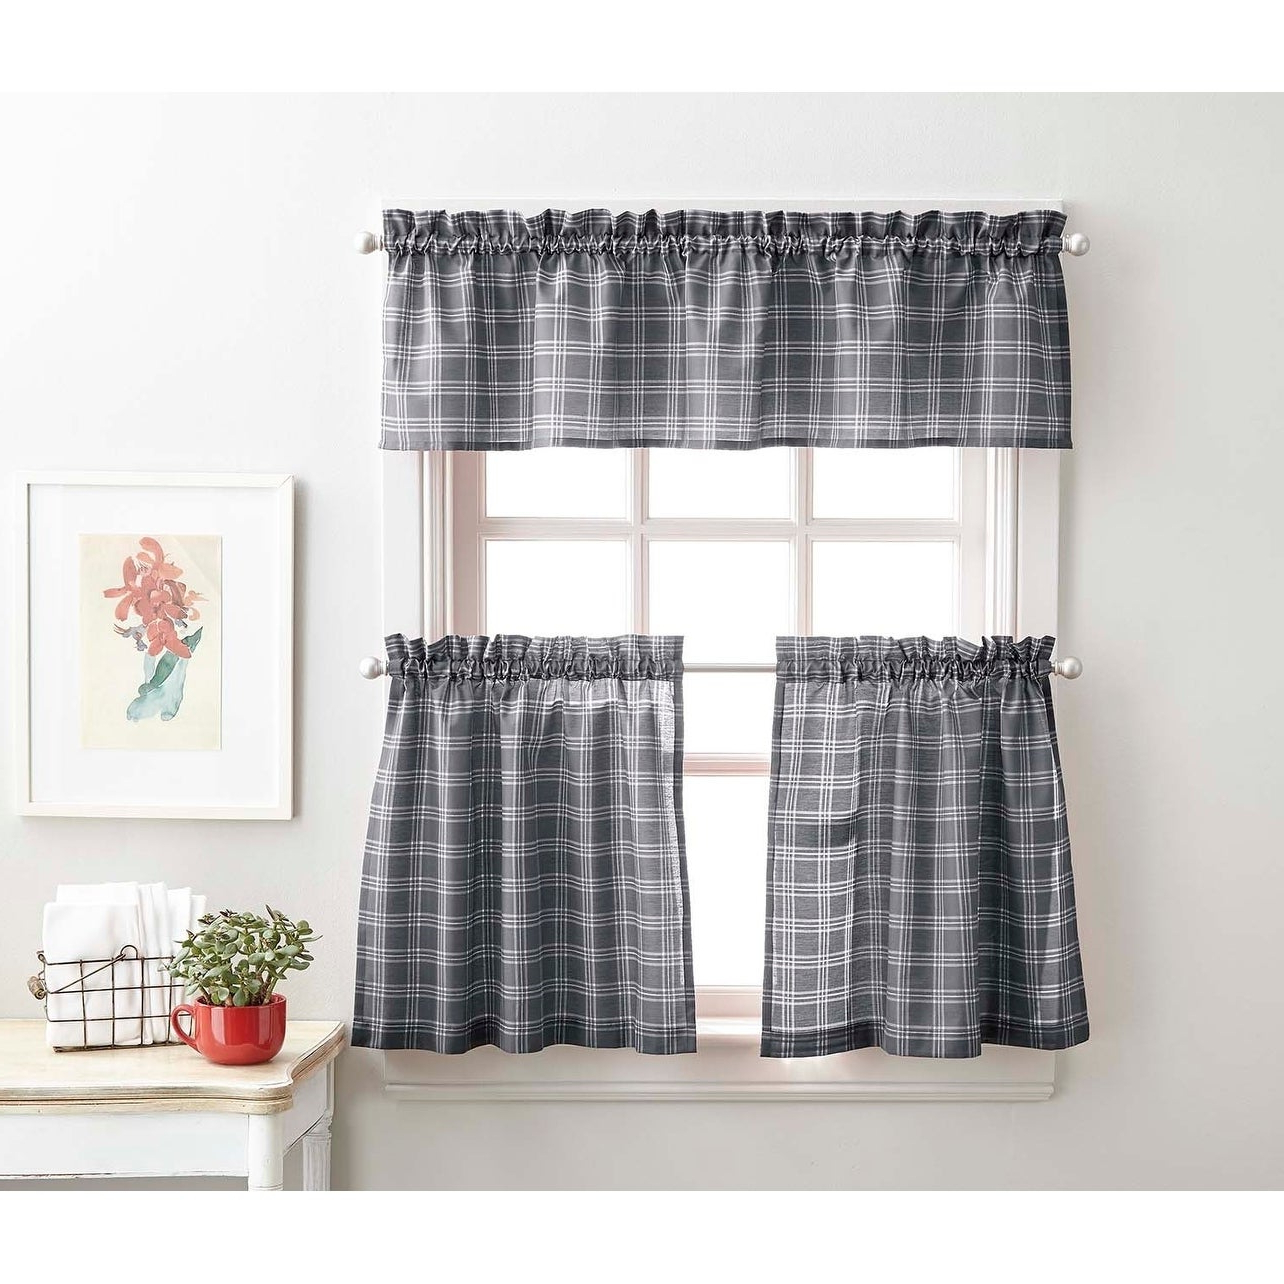 Details About Lodge Plaid 3 Piece Kitchen Curtain Tier And Valance Set – With Most Popular Abby Embroidered 5 Piece Curtain Tier And Swag Sets (View 7 of 20)